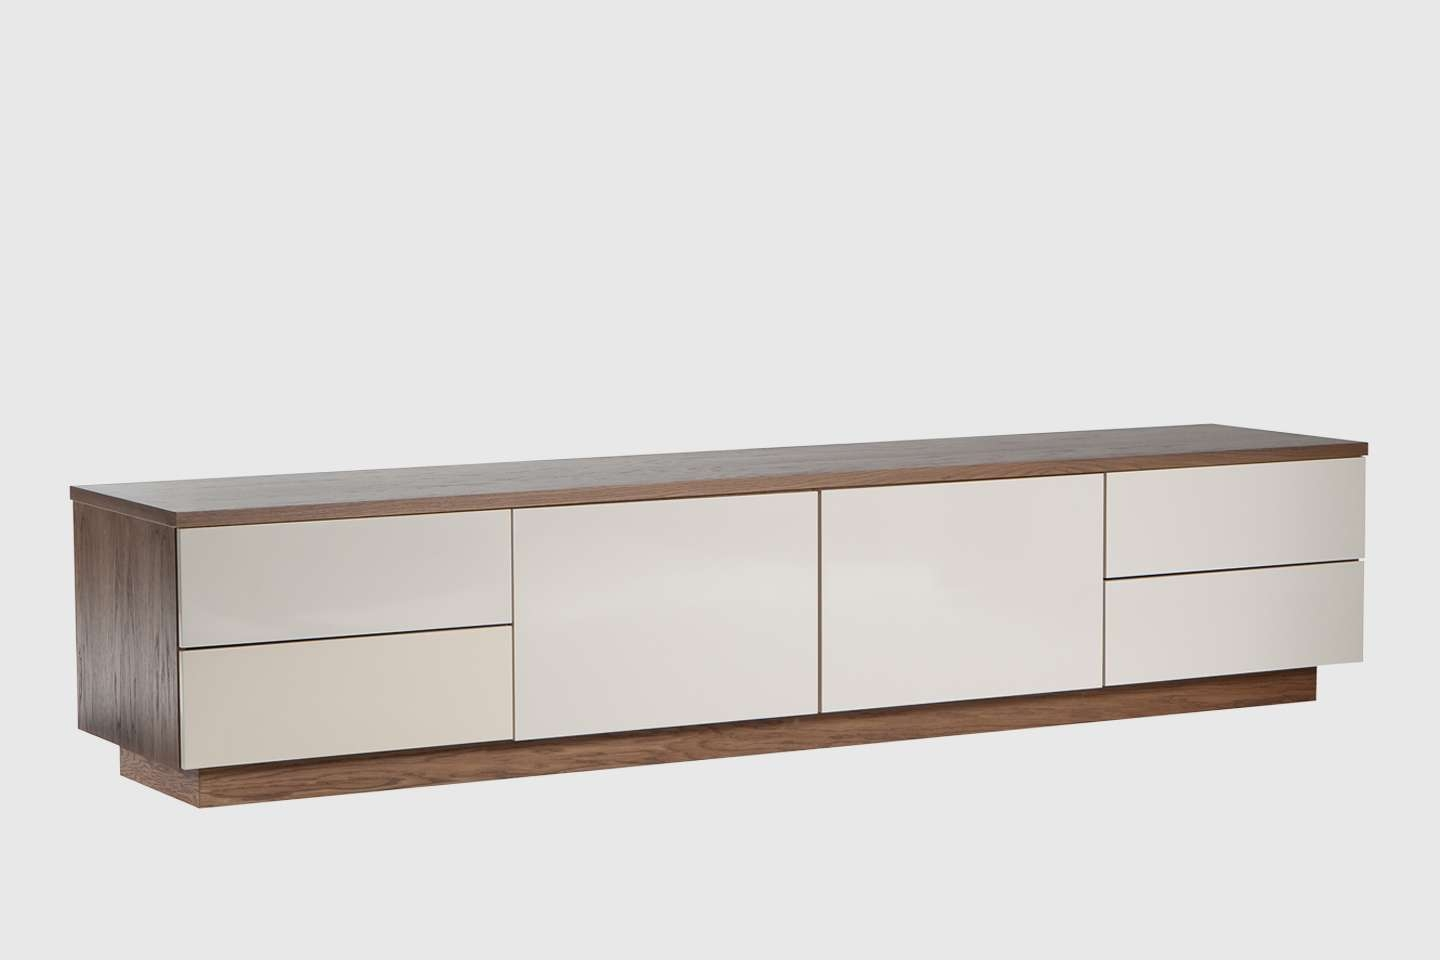 20 Best Ideas Of Small Low Sideboards Inside Low Sideboards (View 5 of 20)